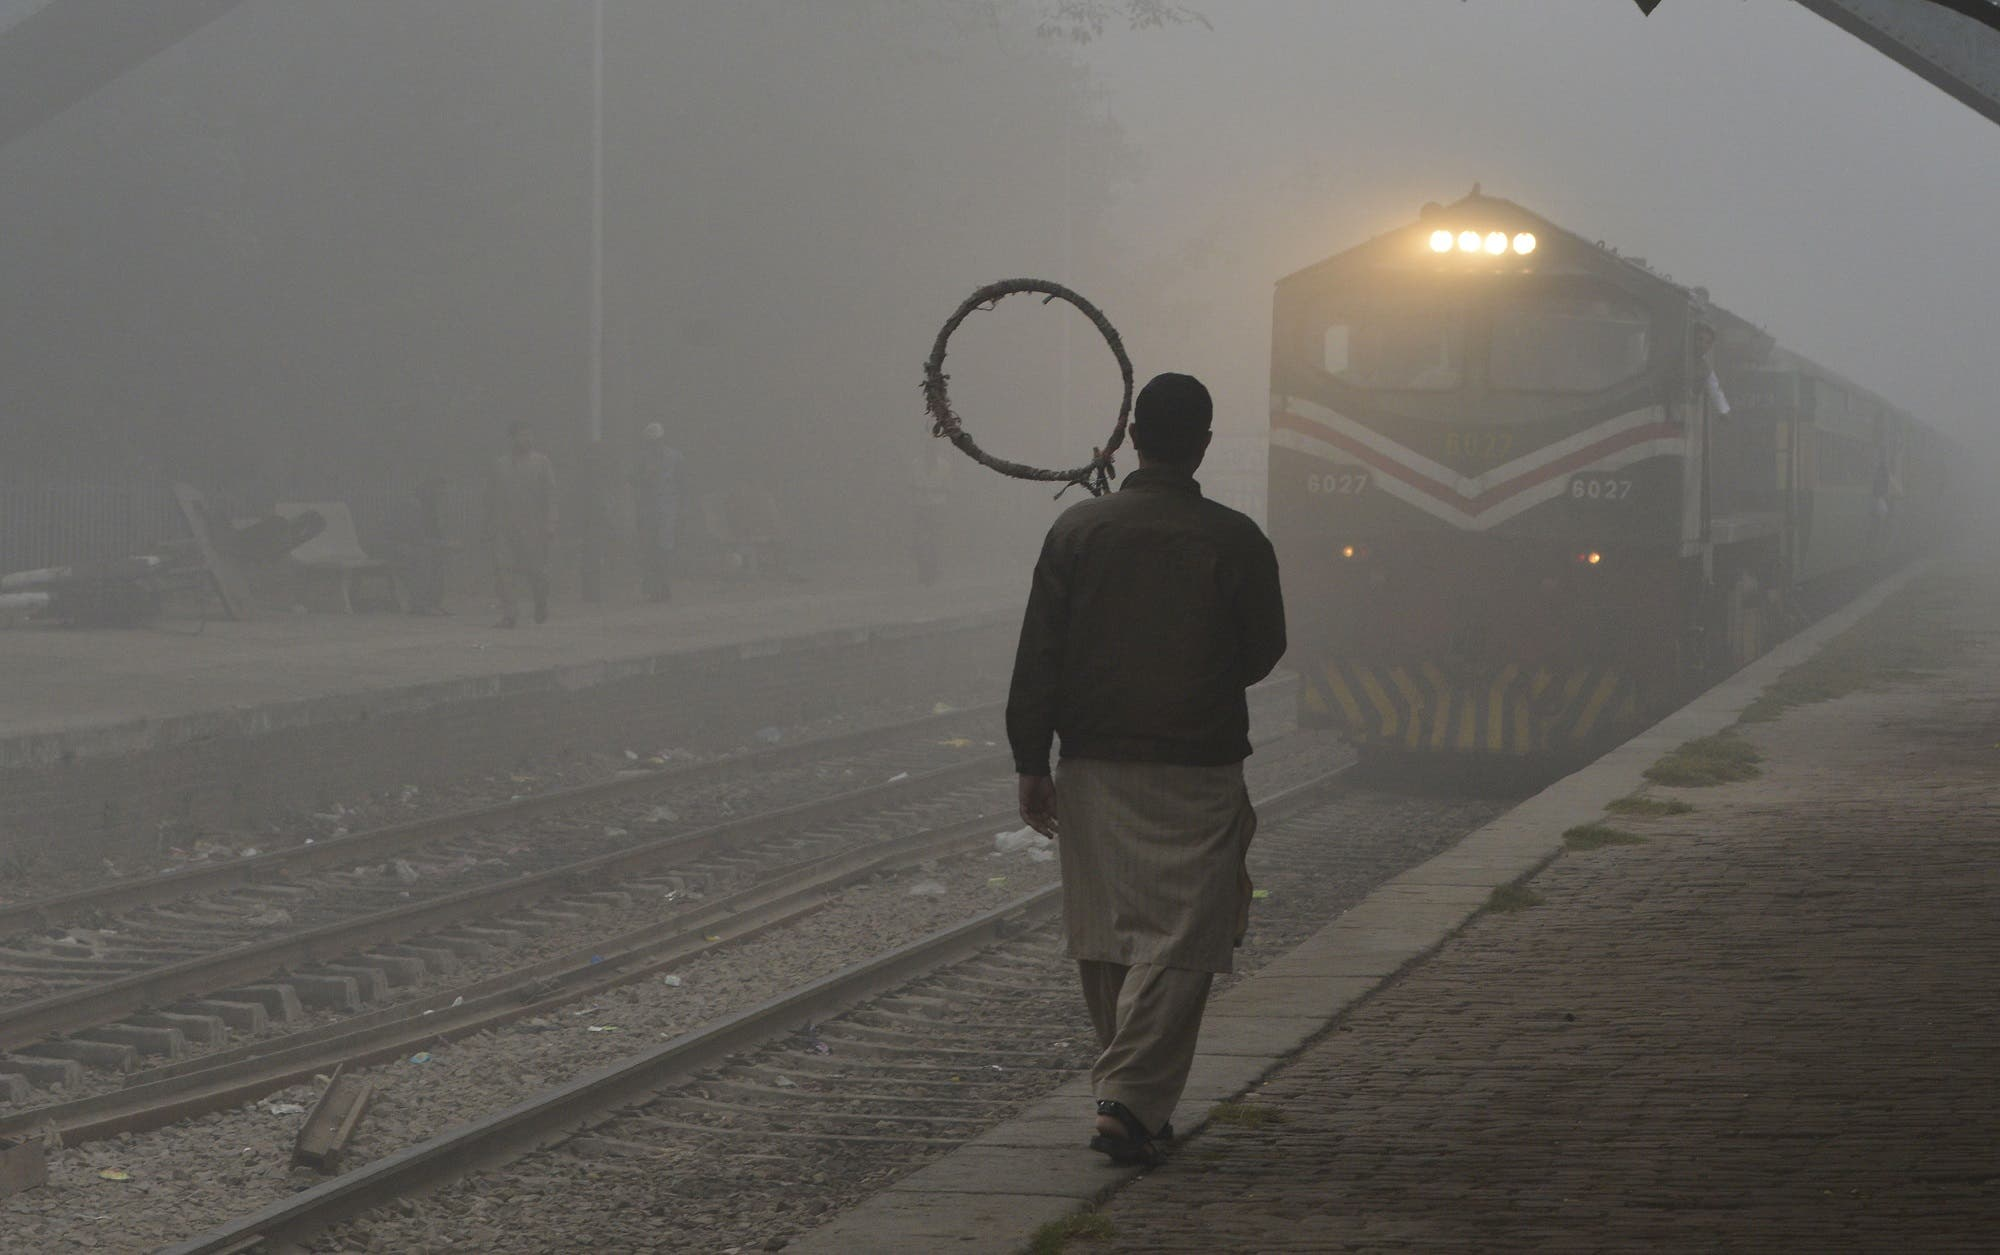 A Pakistani railway worker walks on the platform while a train arrives at a station in heavy smog in Lahore on November 6, 2017. (AFP)